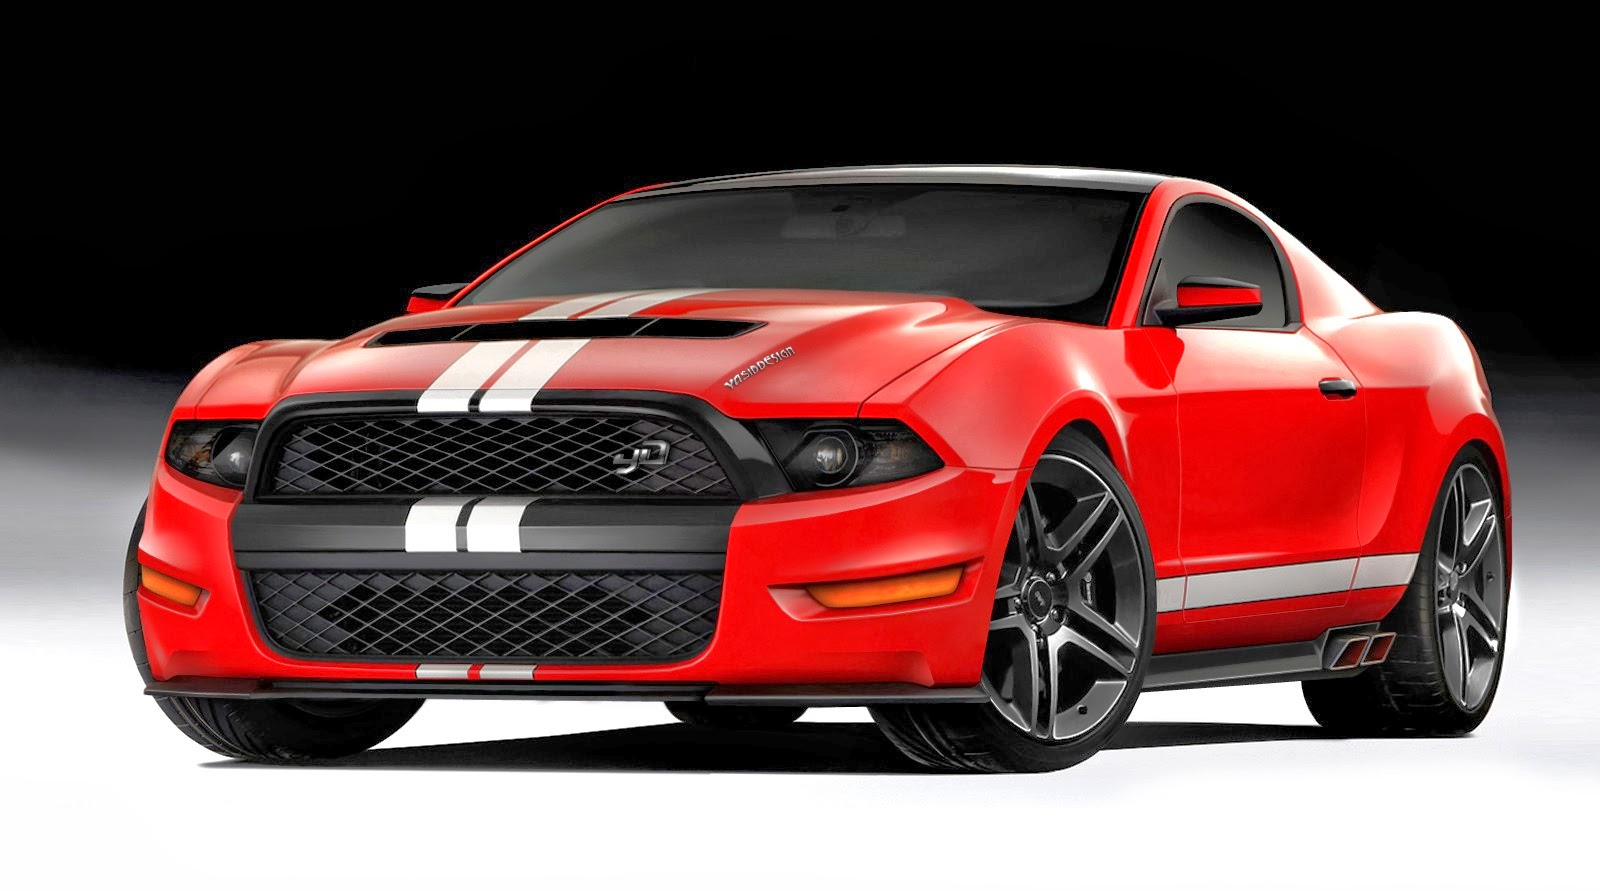 Hd wallpapers cars wallpapers 2014